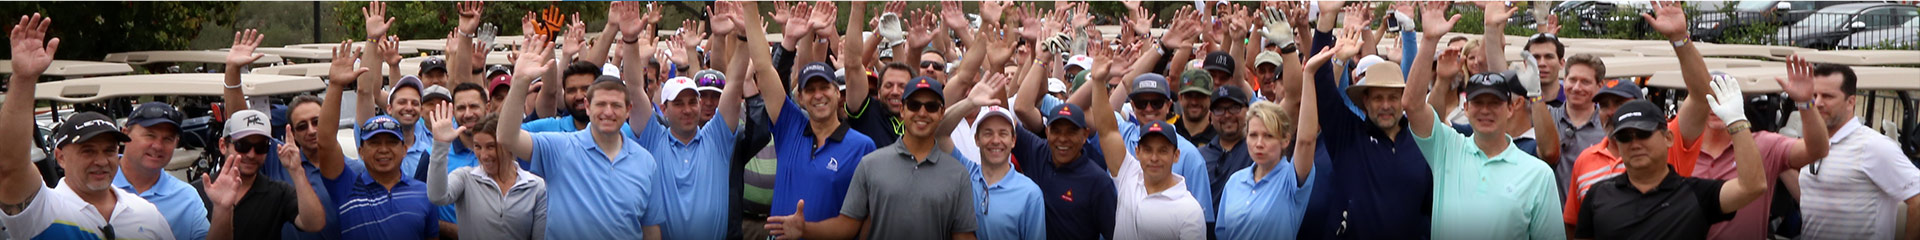 Decron team members posing for group photo with hands in the air at YULA golf benefit tournament